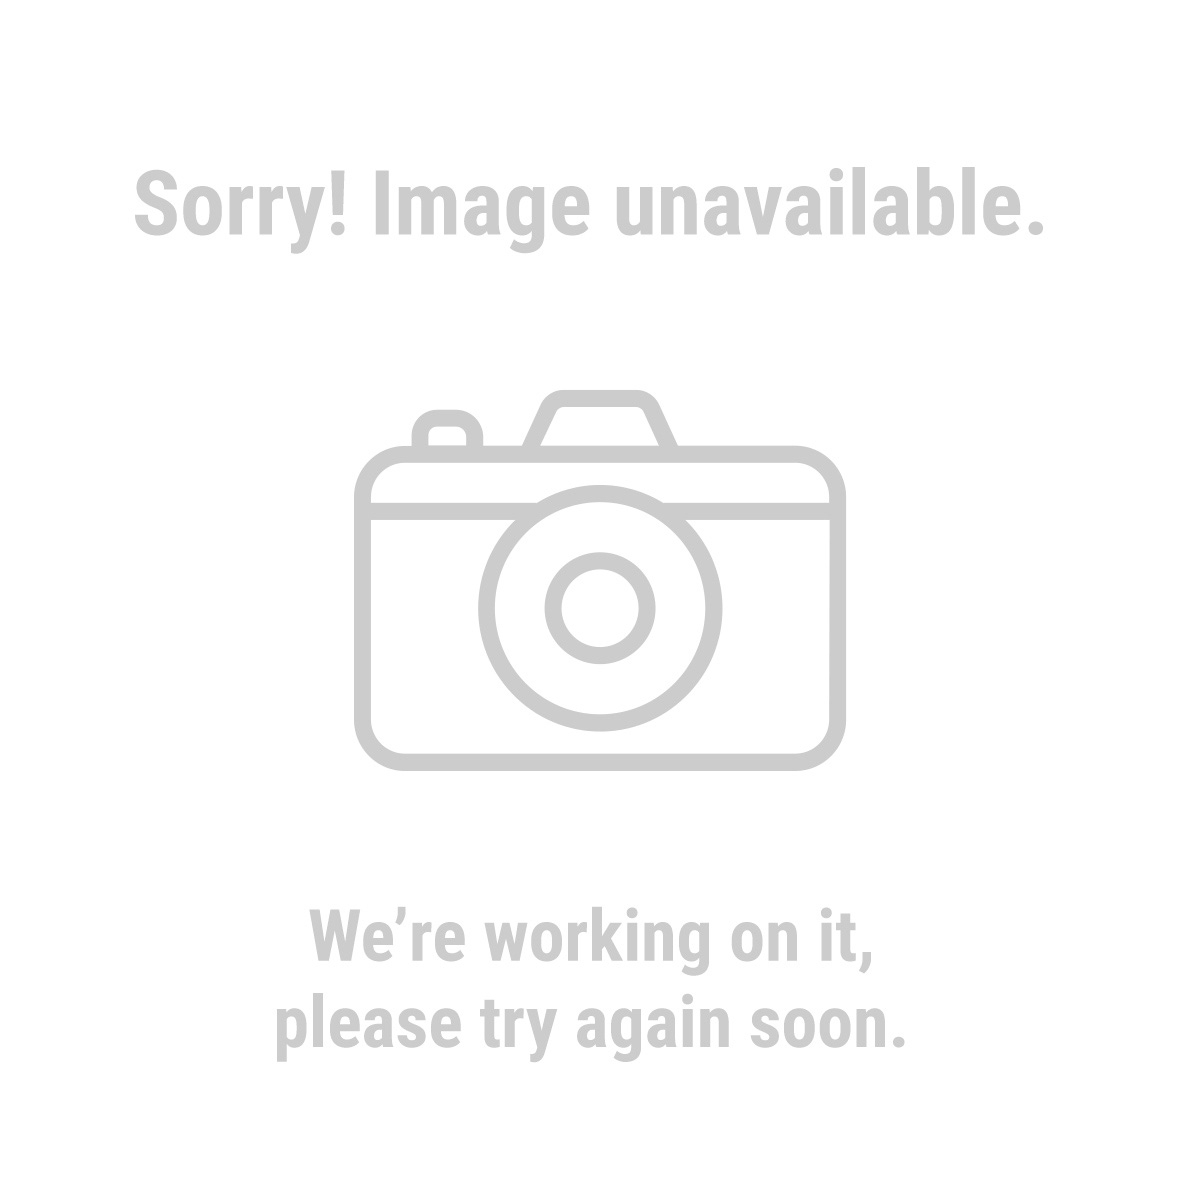 Central Forge® 61329 3 in. Swivel Vise with Anvil